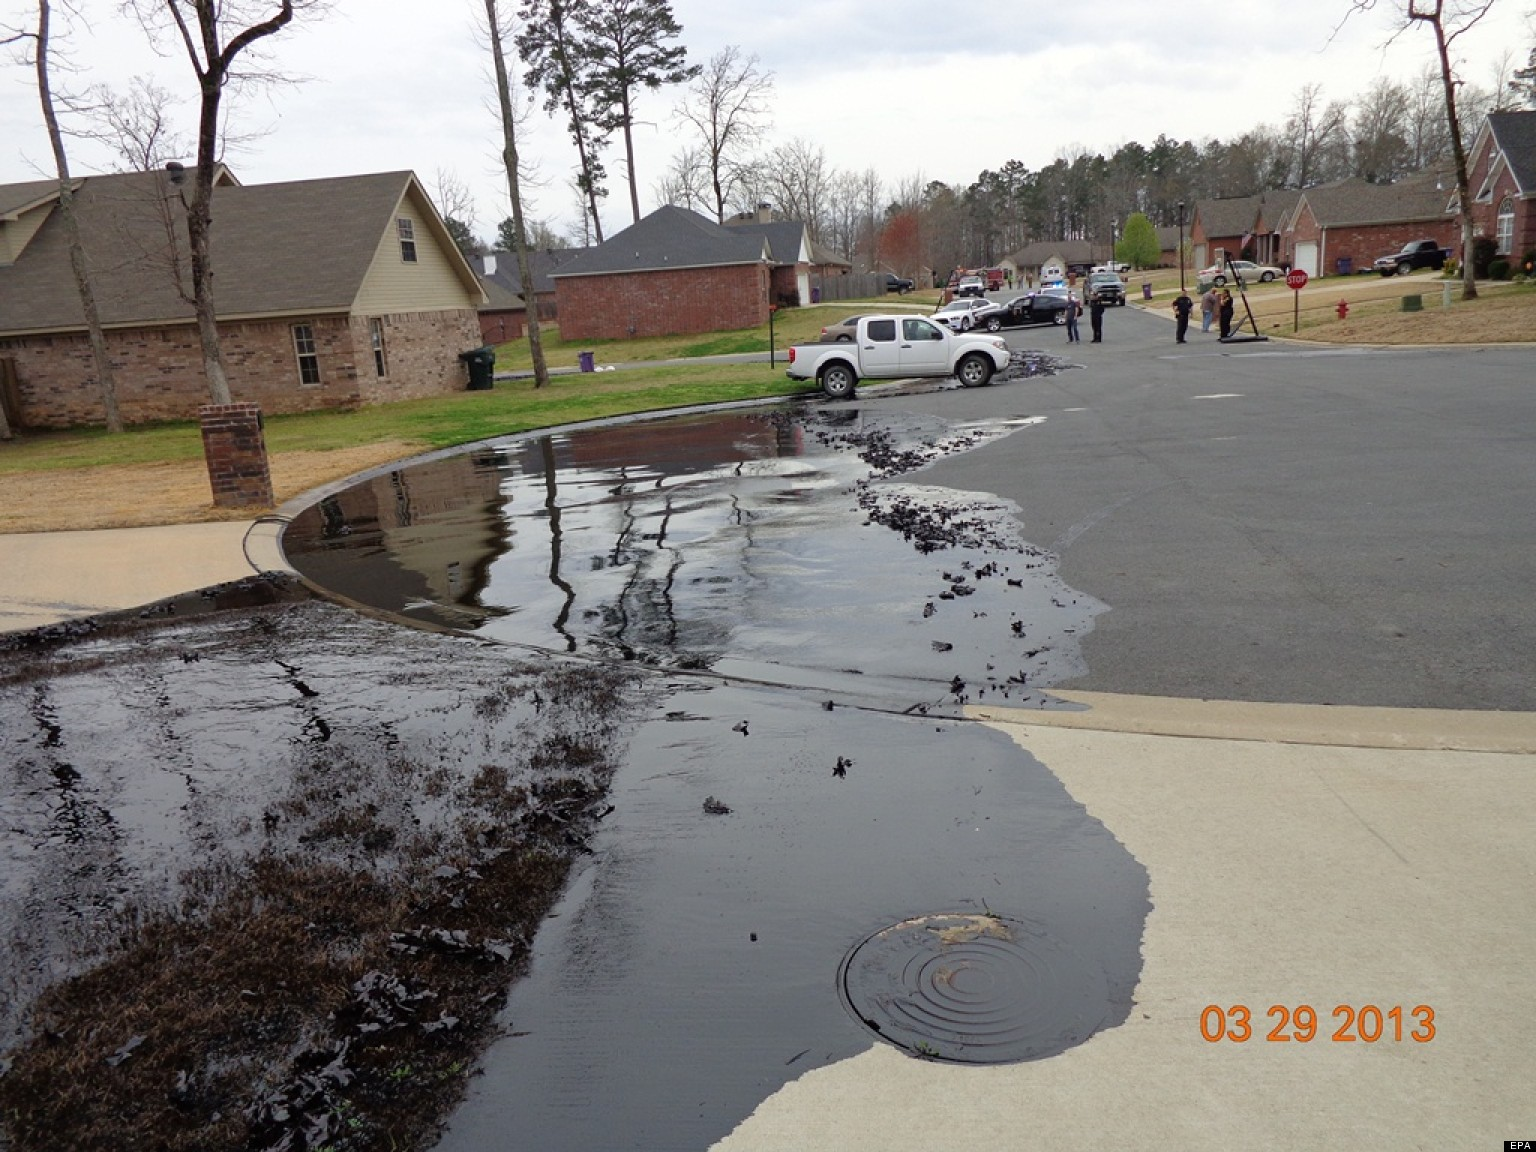 Exxon Oil Spill Photos From Mayflower Arkansas Posted By